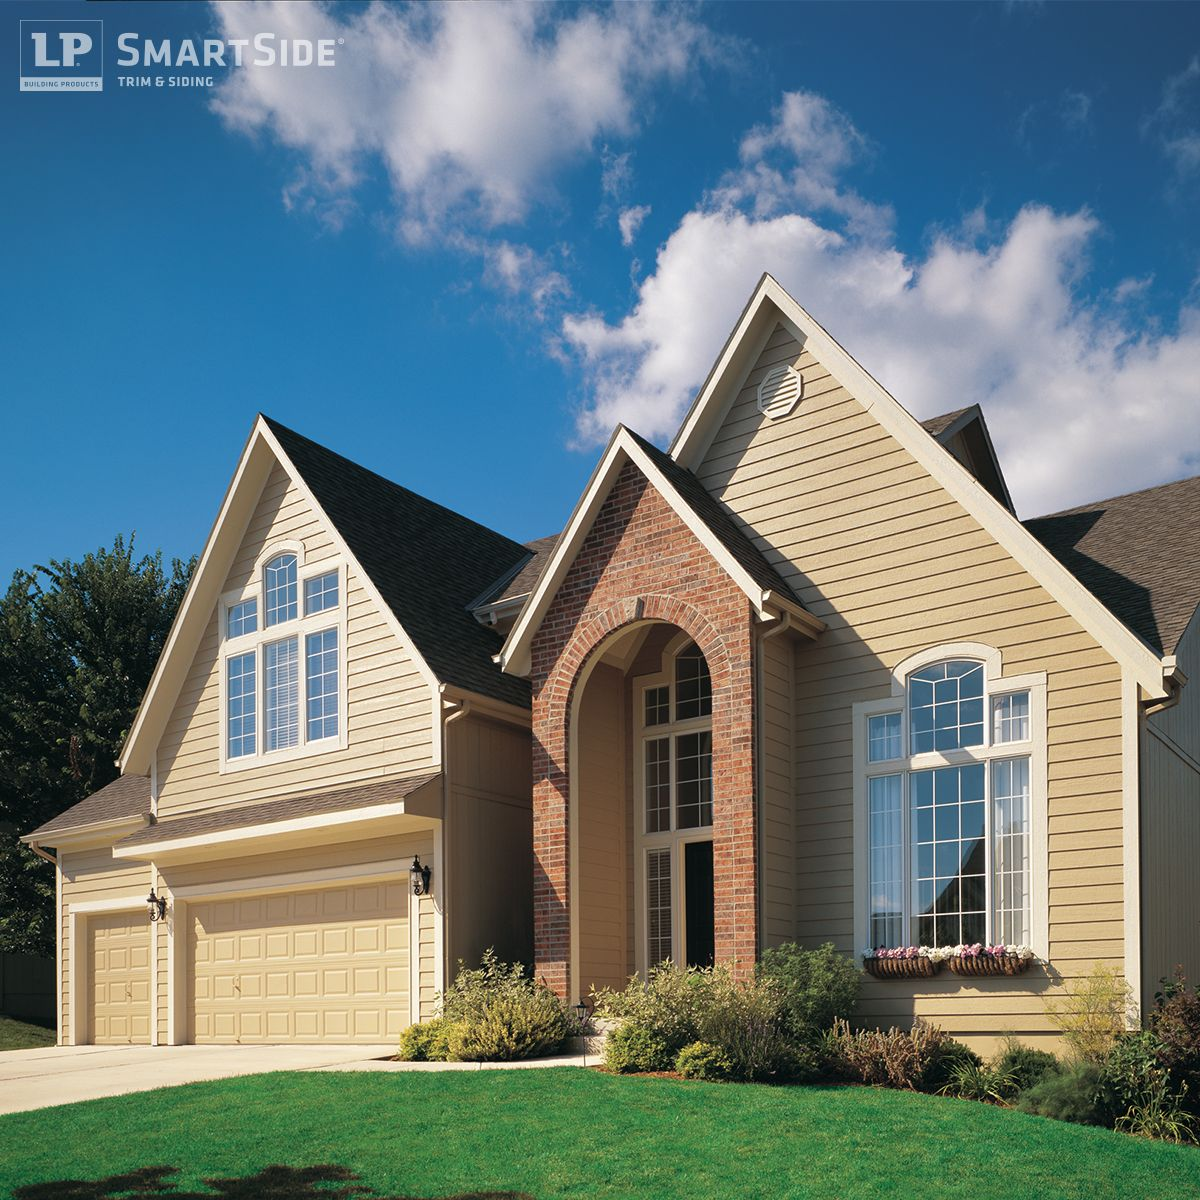 LP SmartSide Lap Siding, Trim And Fascia Help Give This